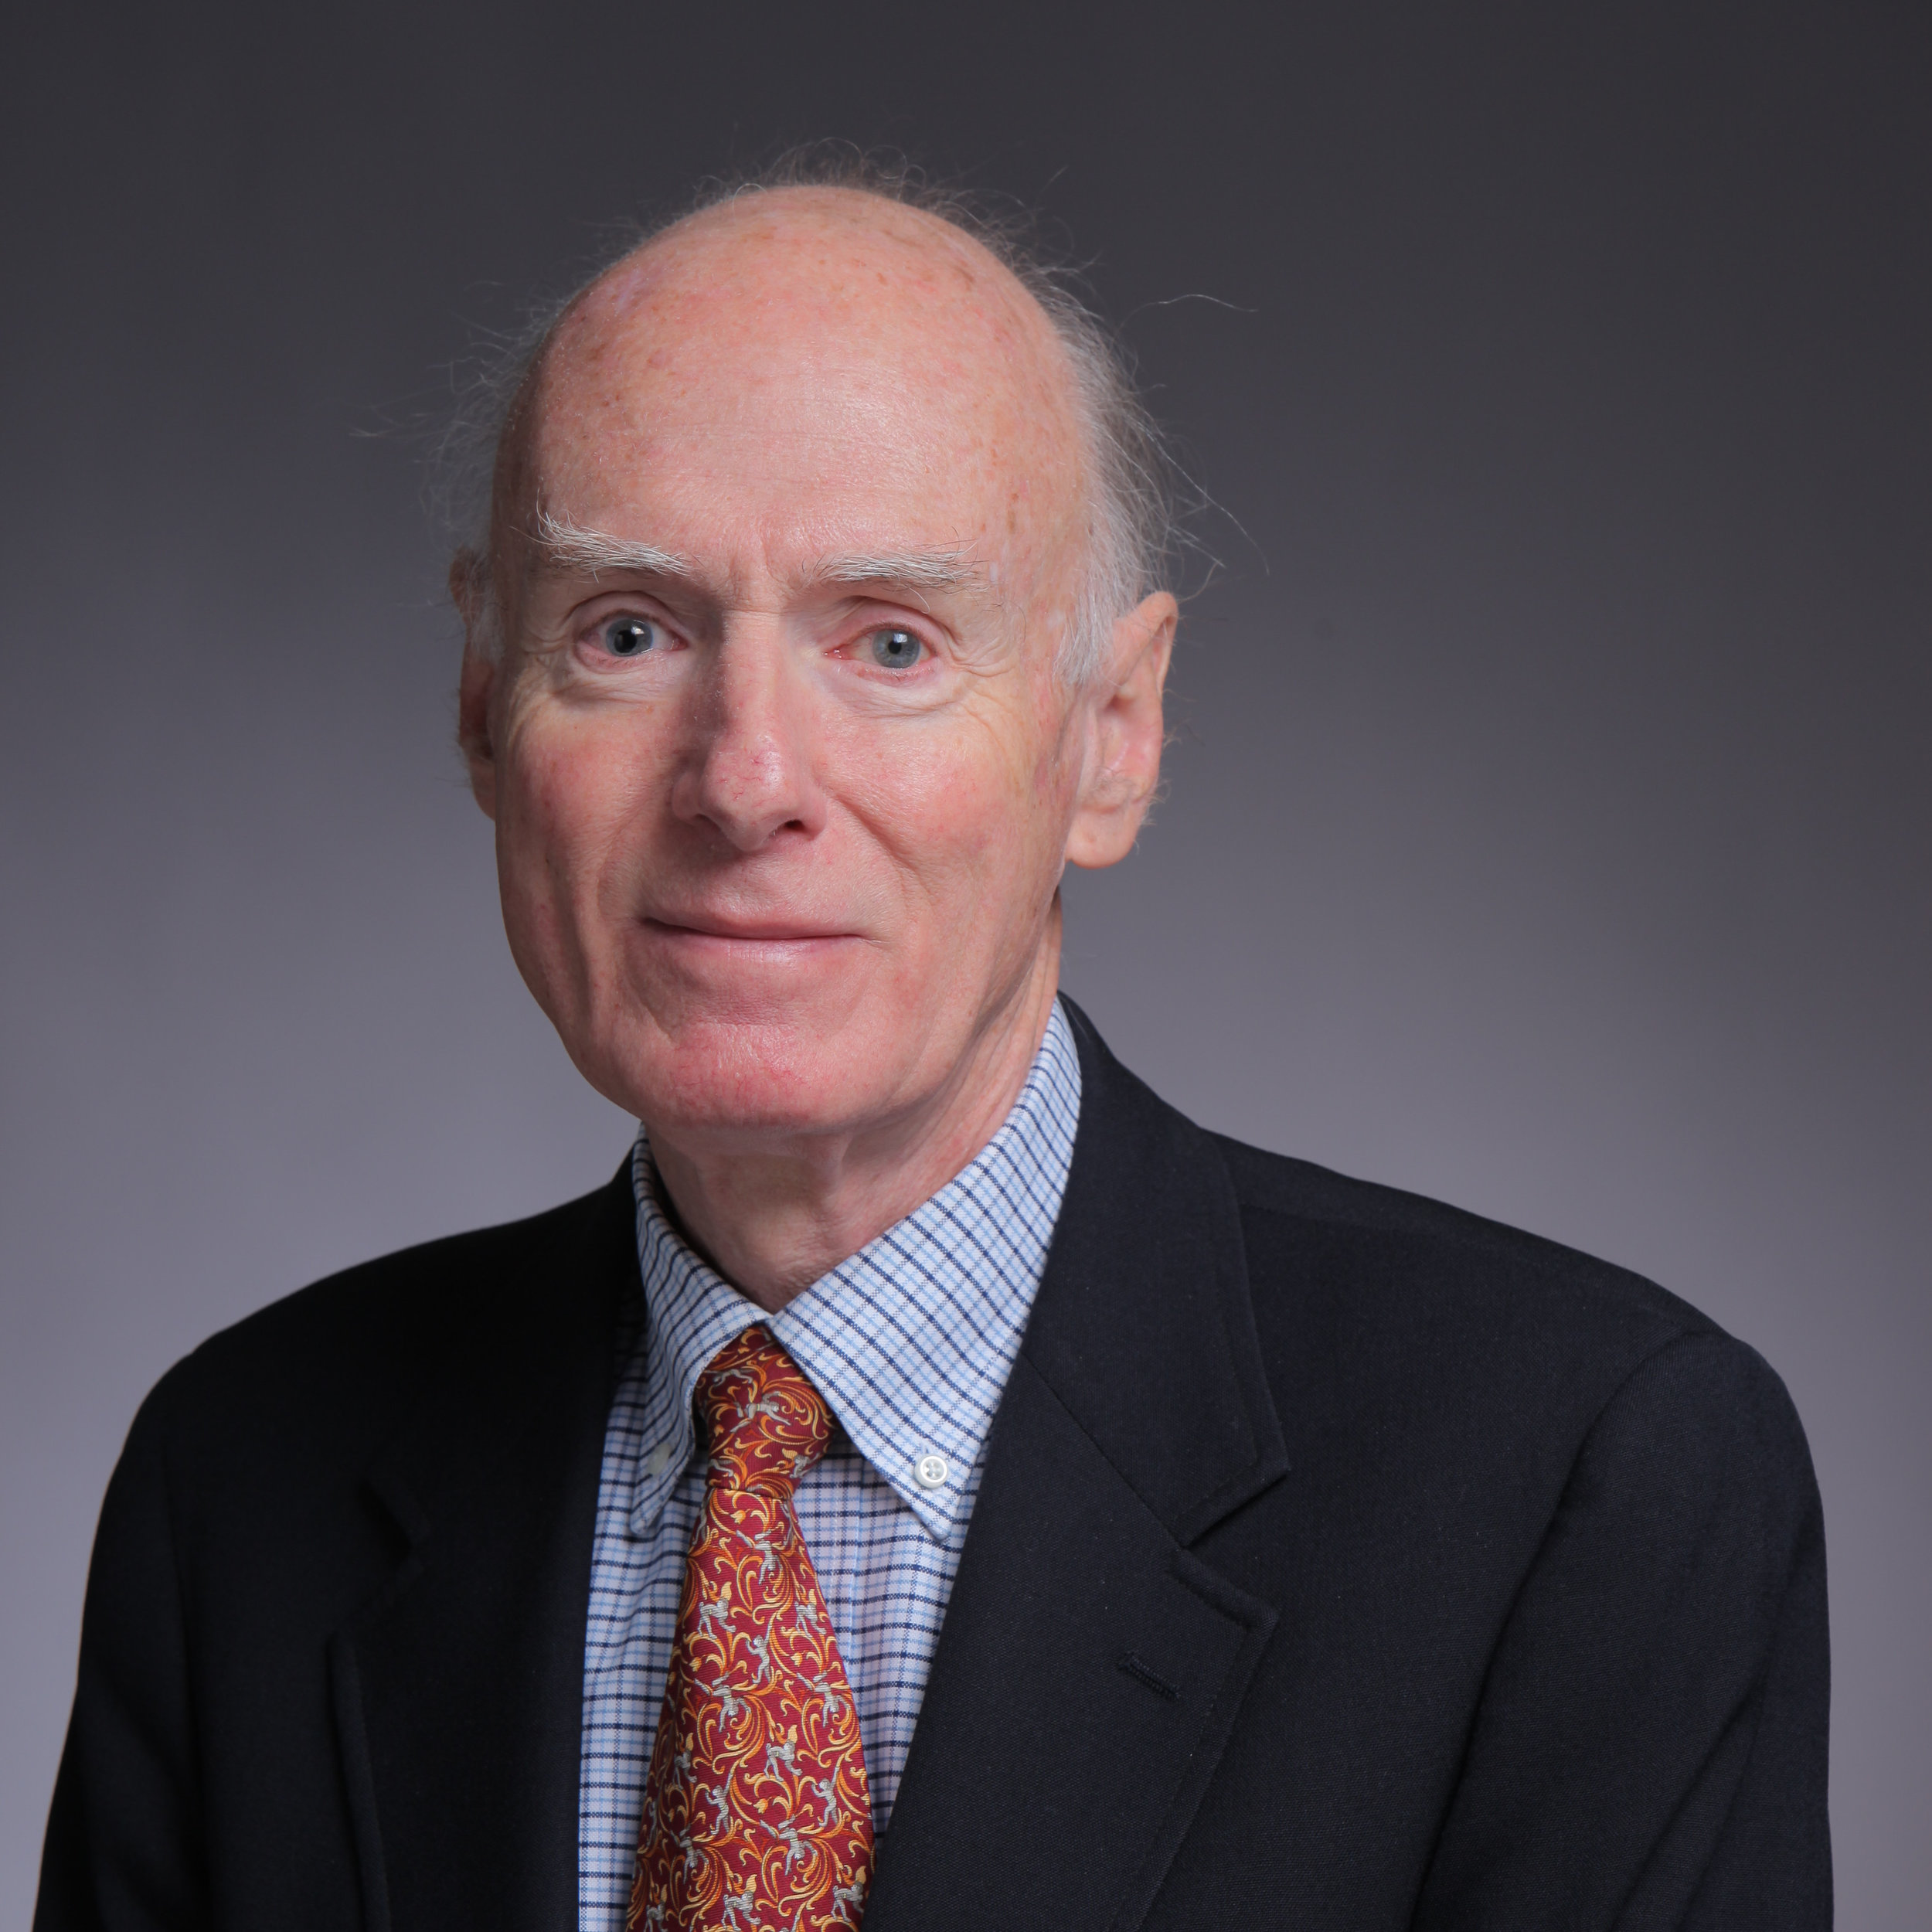 Fred T. Valentine, M.D. - Research Professor of Medicine, Division of Infectious Diseases and Immunology